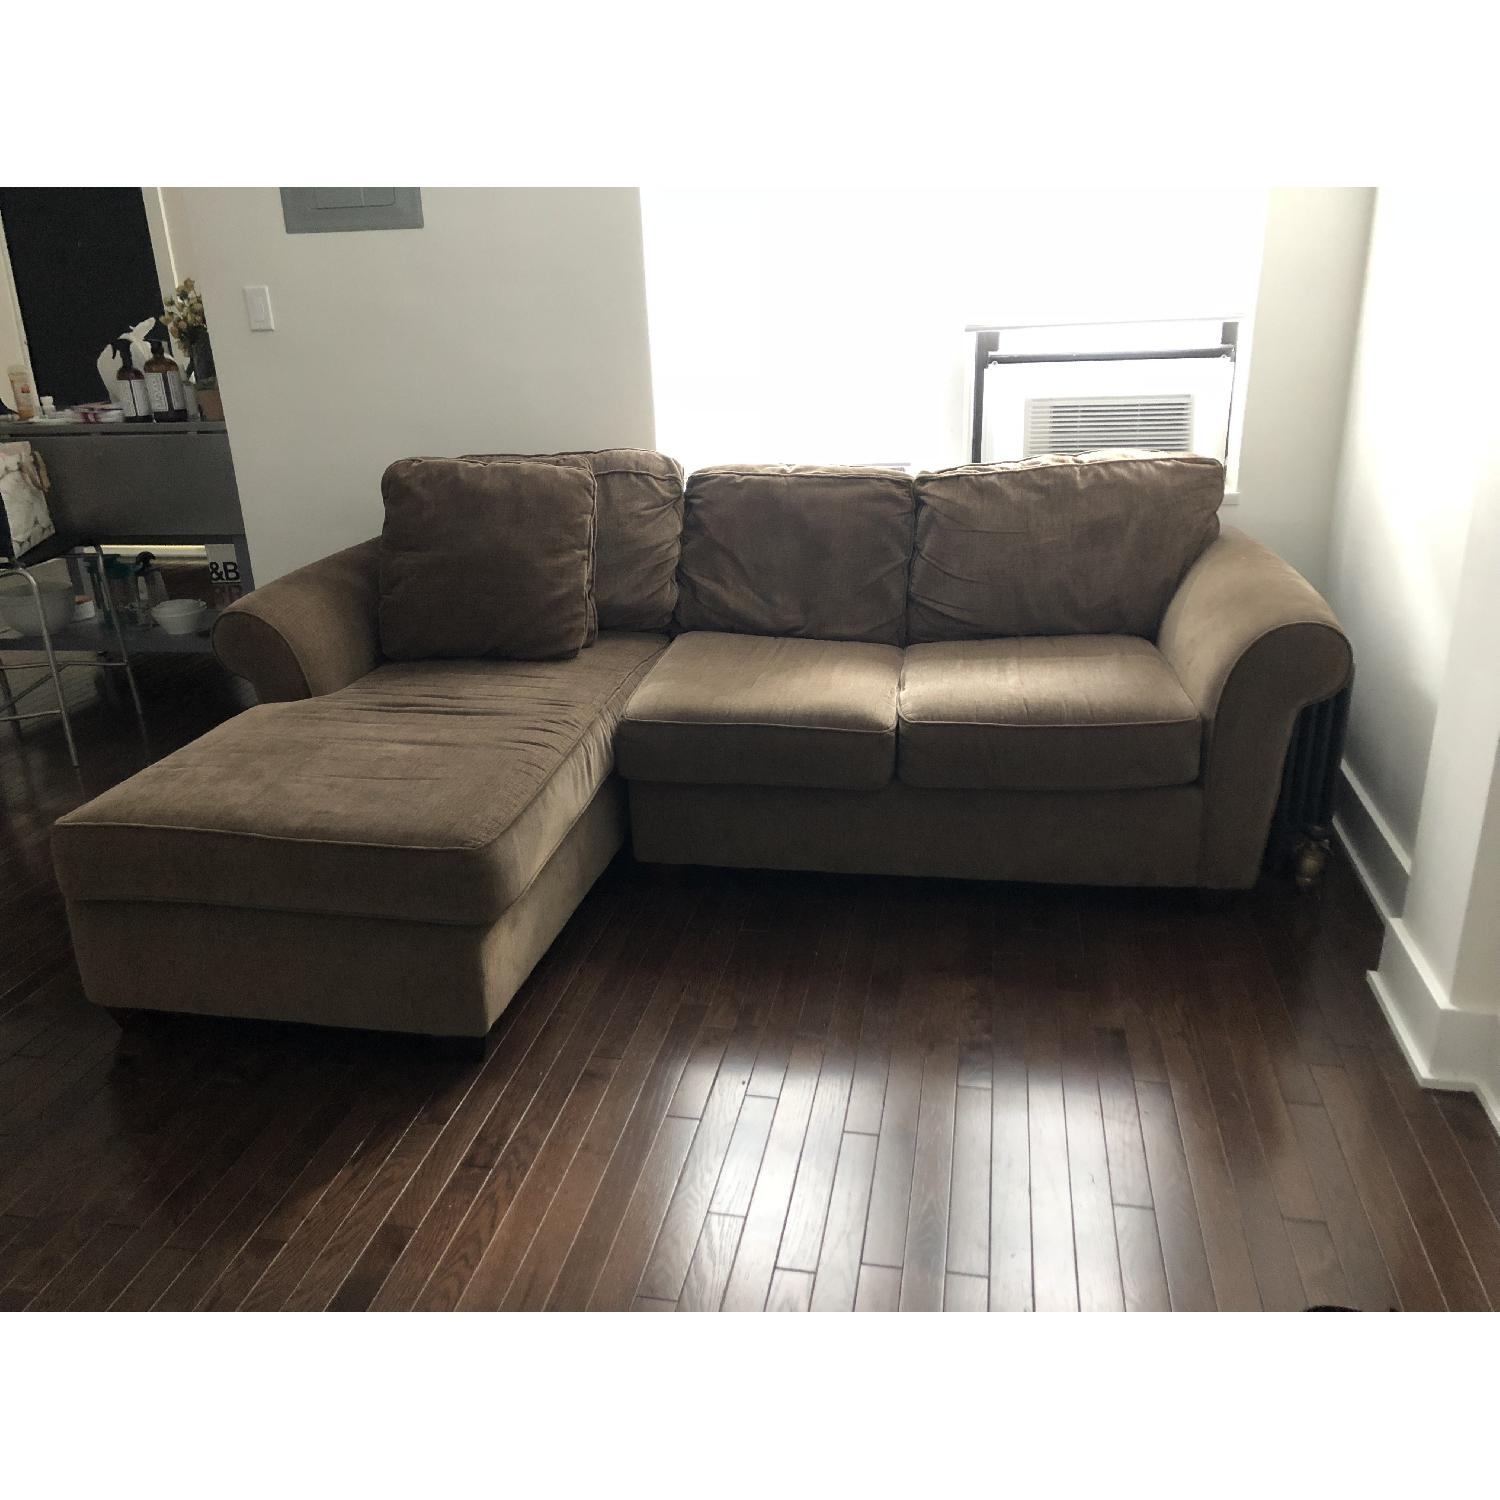 2 Piece Chaise Sectional Sofa | Baci Living Room throughout Tenny Cognac 2 Piece Right Facing Chaise Sectionals With 2 Headrest (Image 2 of 30)